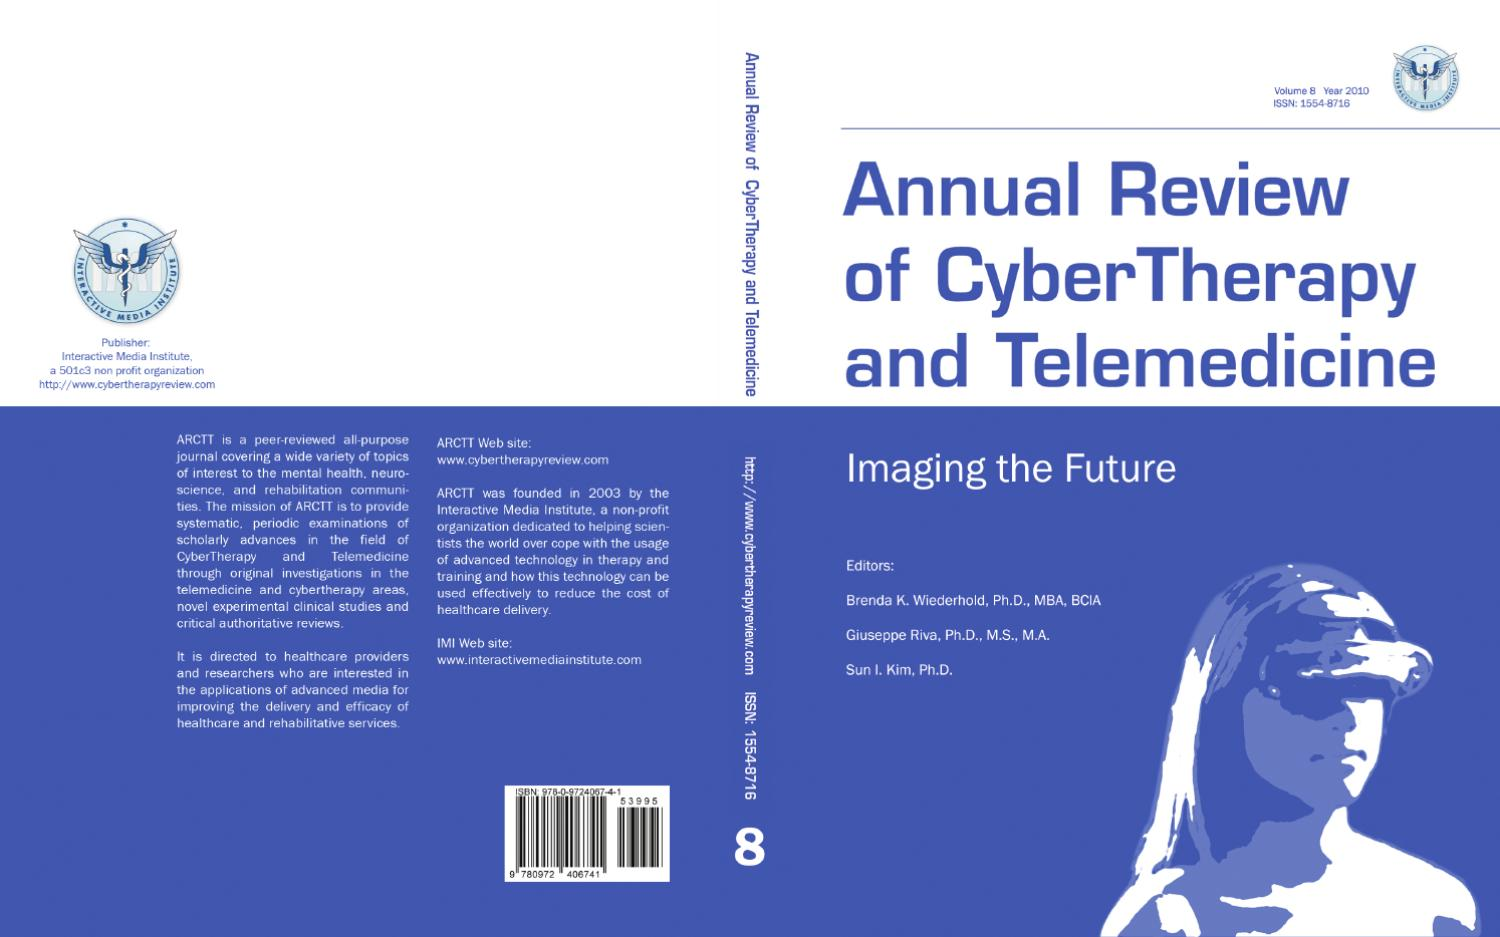 Annual Review of CyberTherapy and Telemedicine, Volume 8